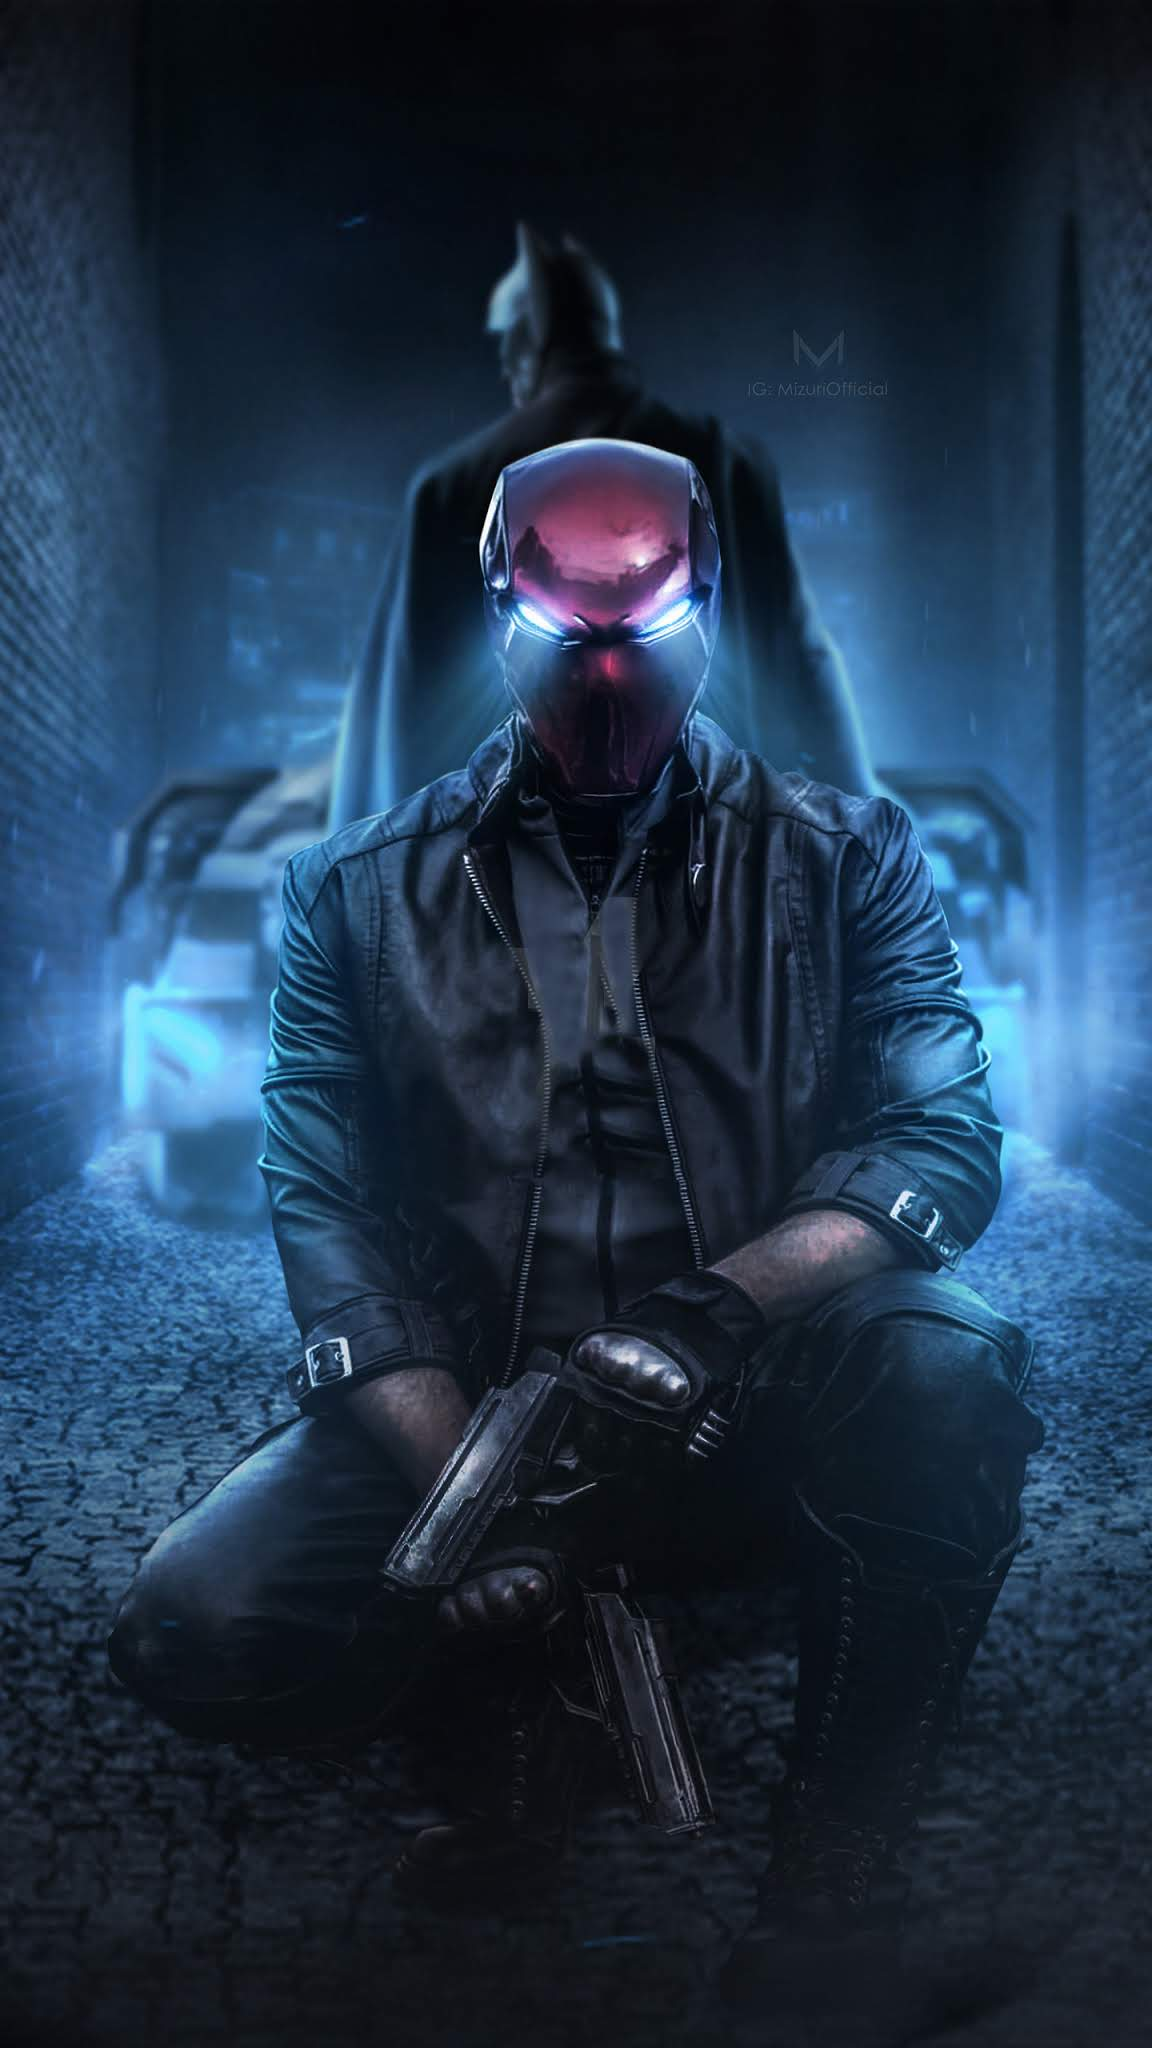 Red Hood And Batman 2019 1440x2560 Mobile Wallpaper - HD ...